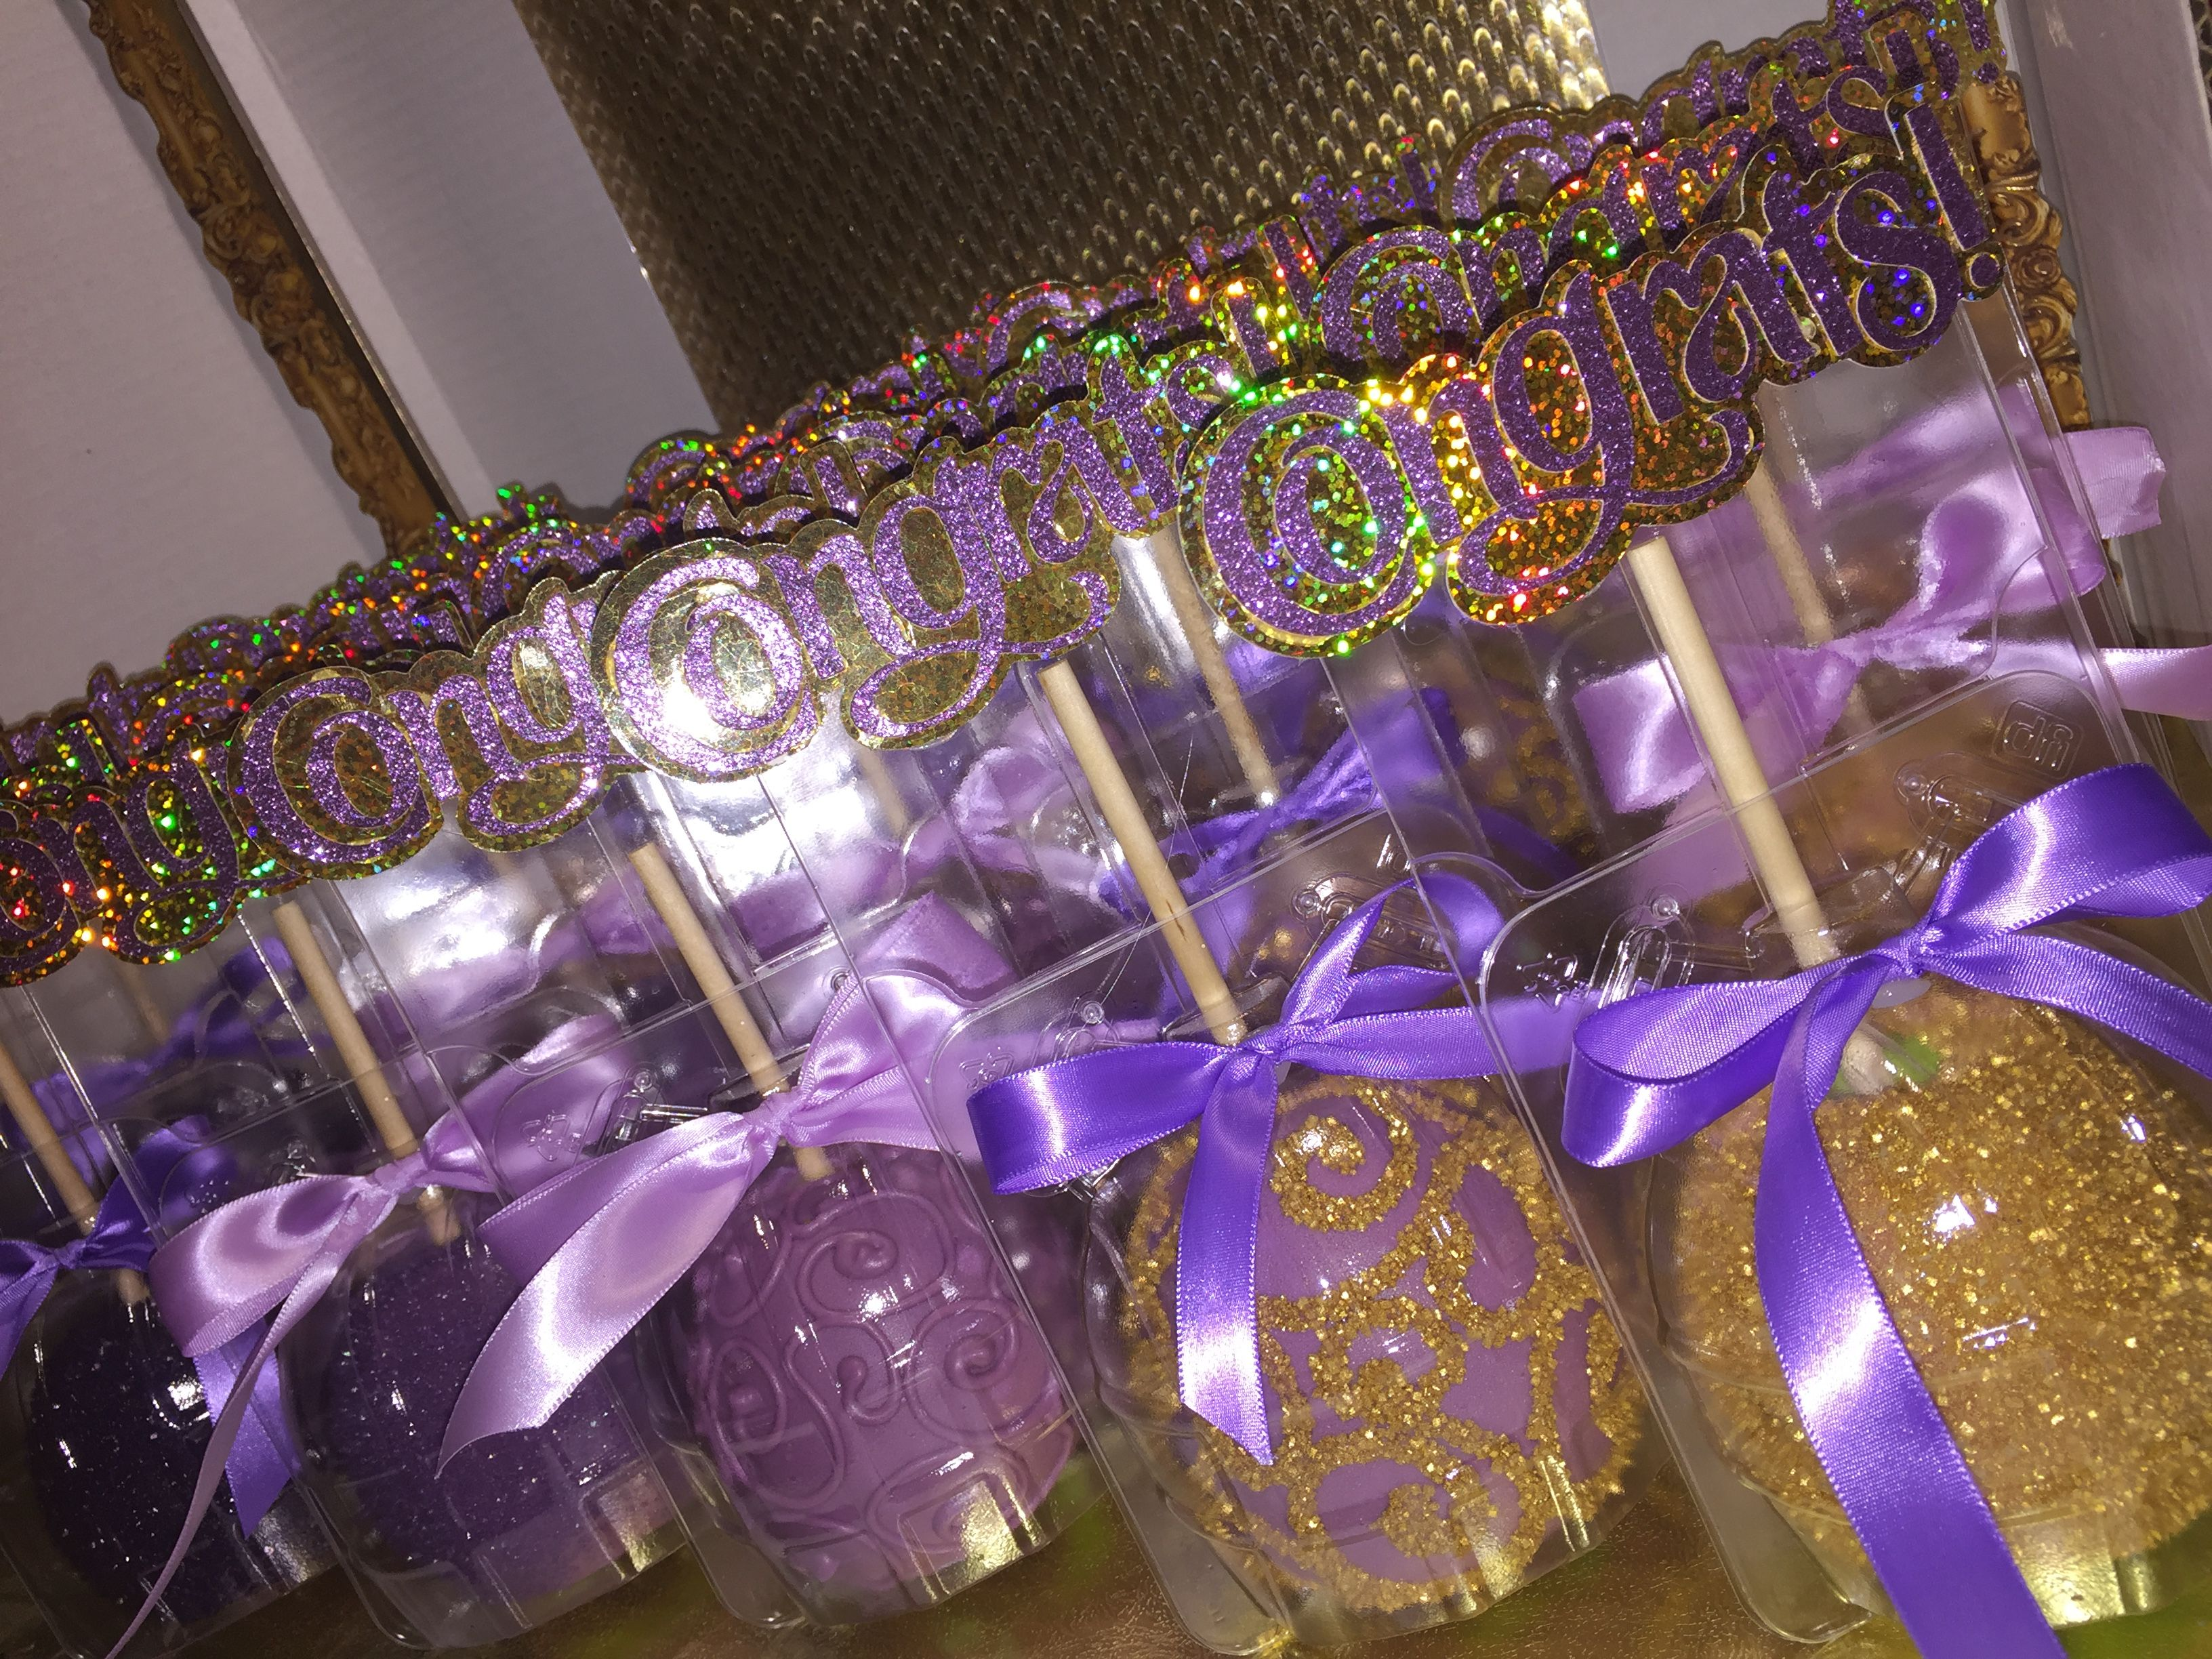 Purple And Gold Chocolate Covered Apples I Made This In